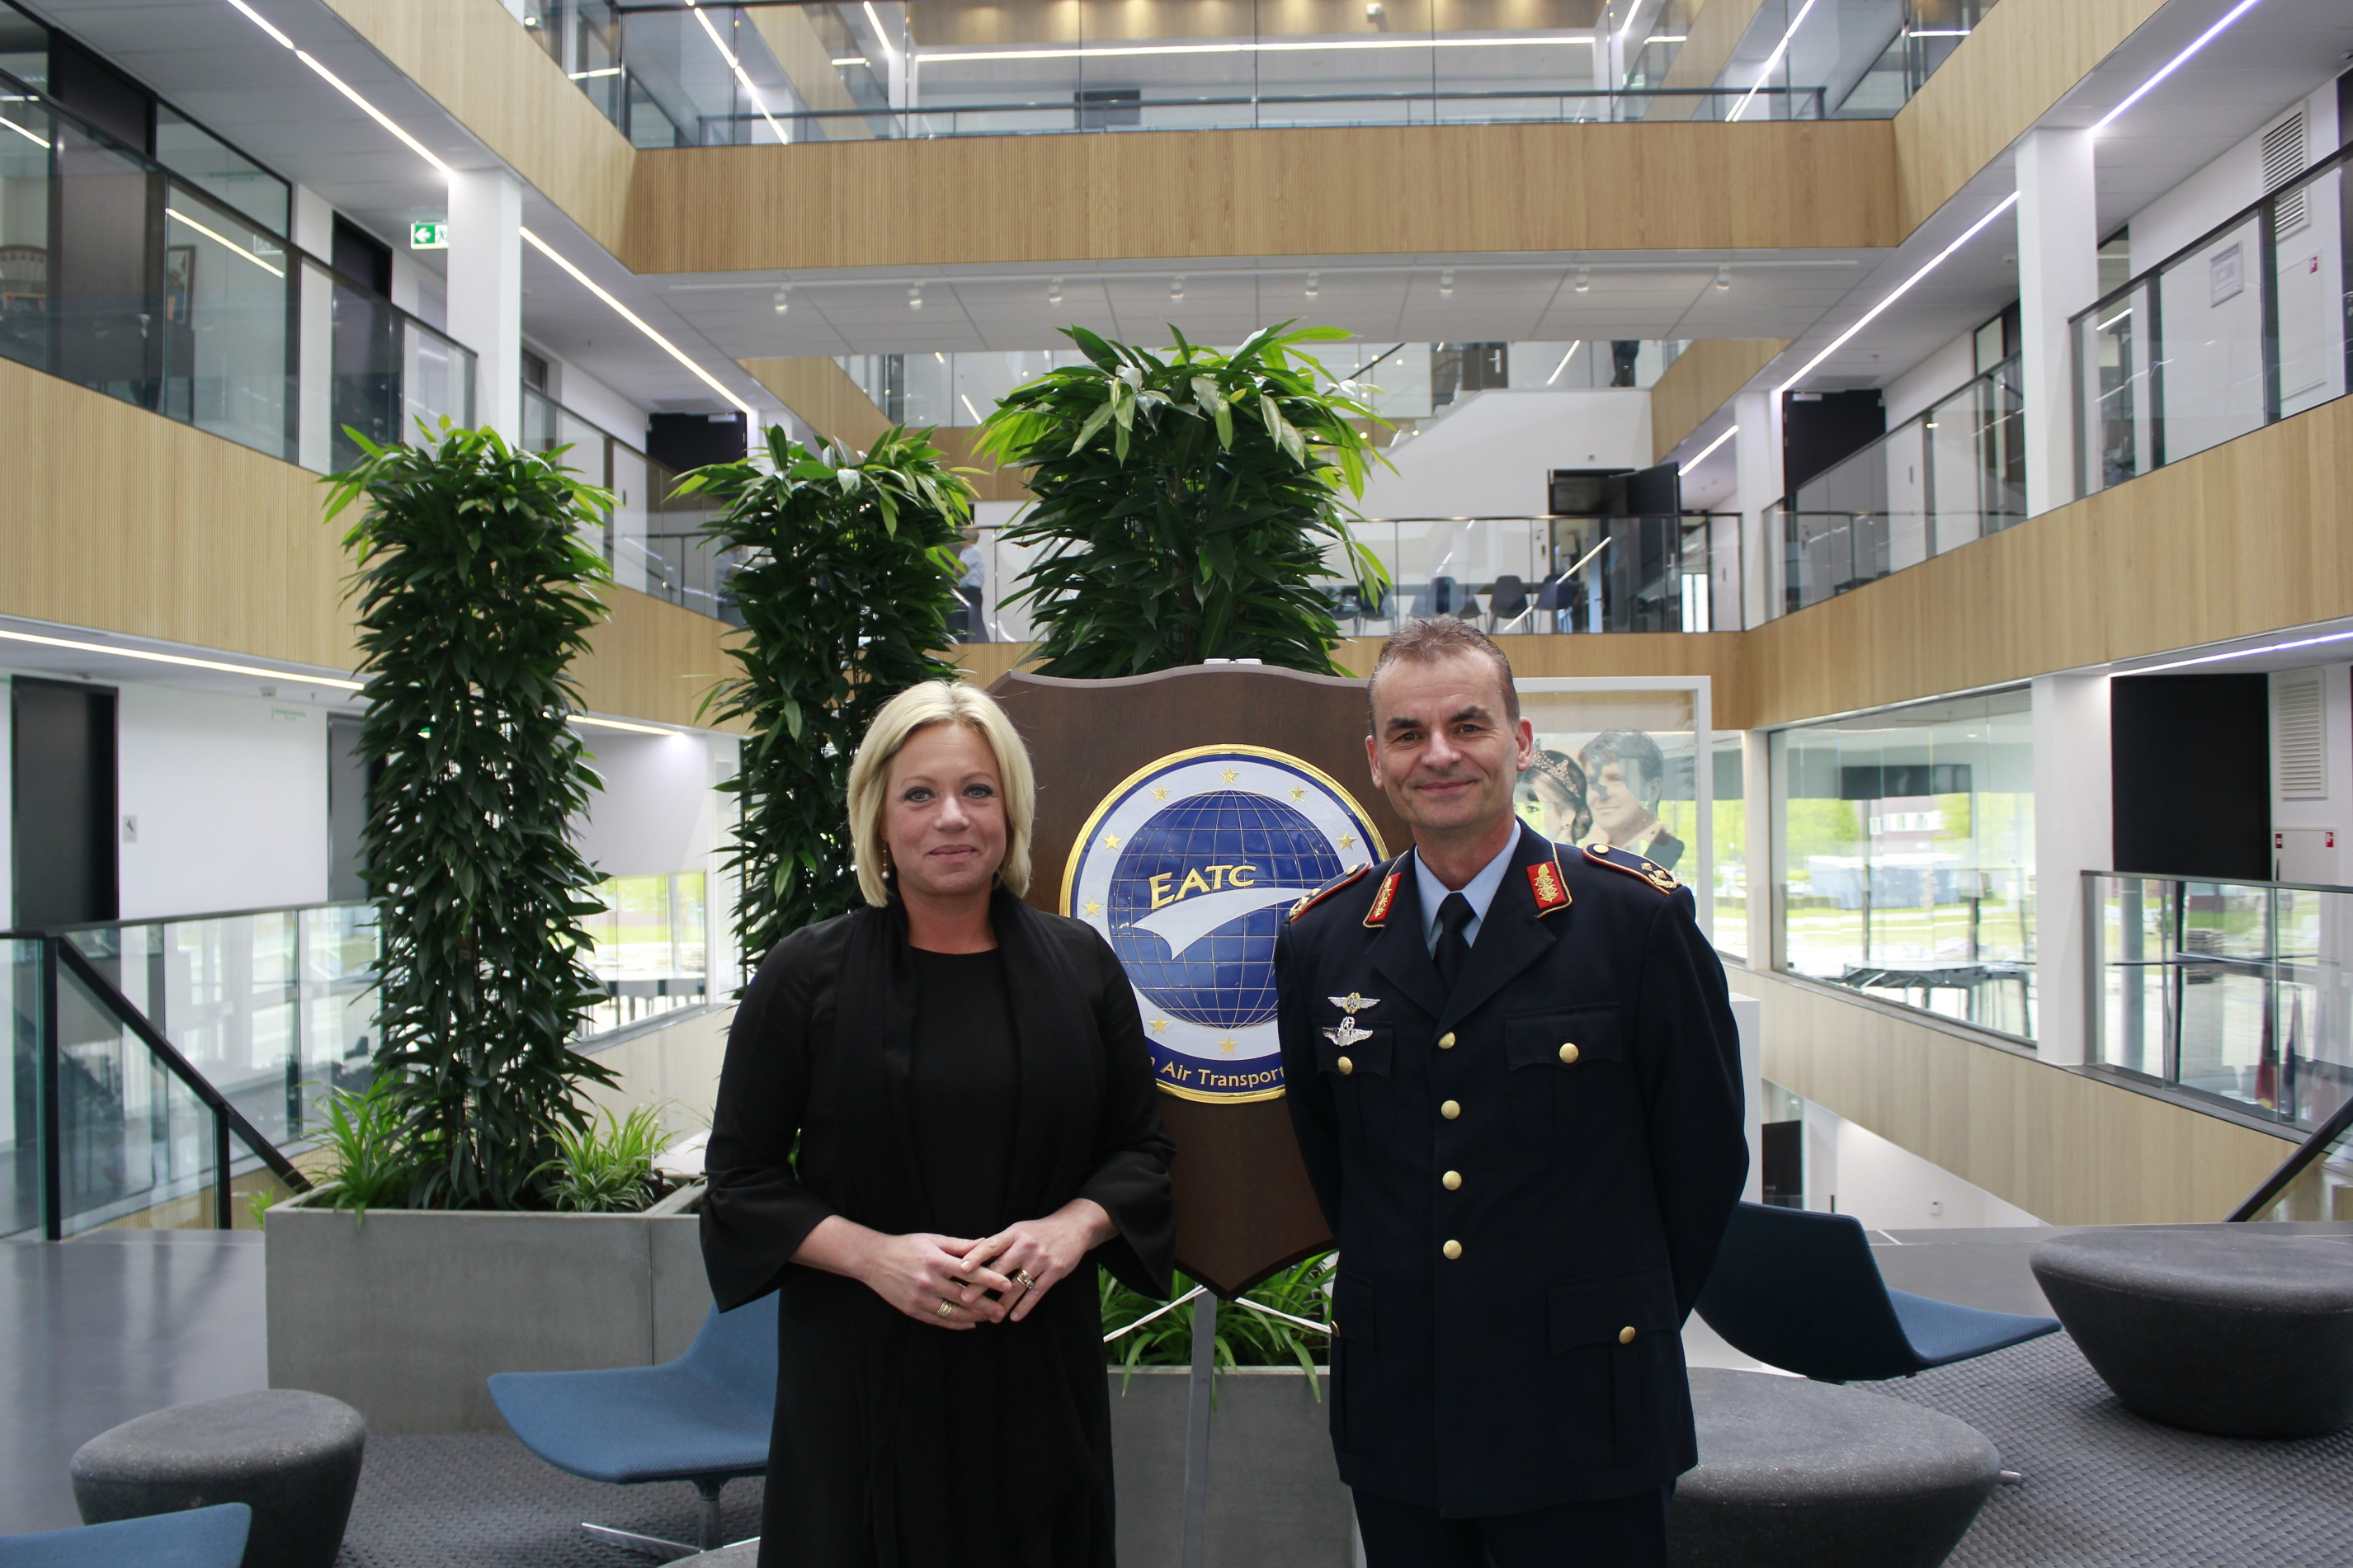 Minister of Defence of the Netherlands at EATC